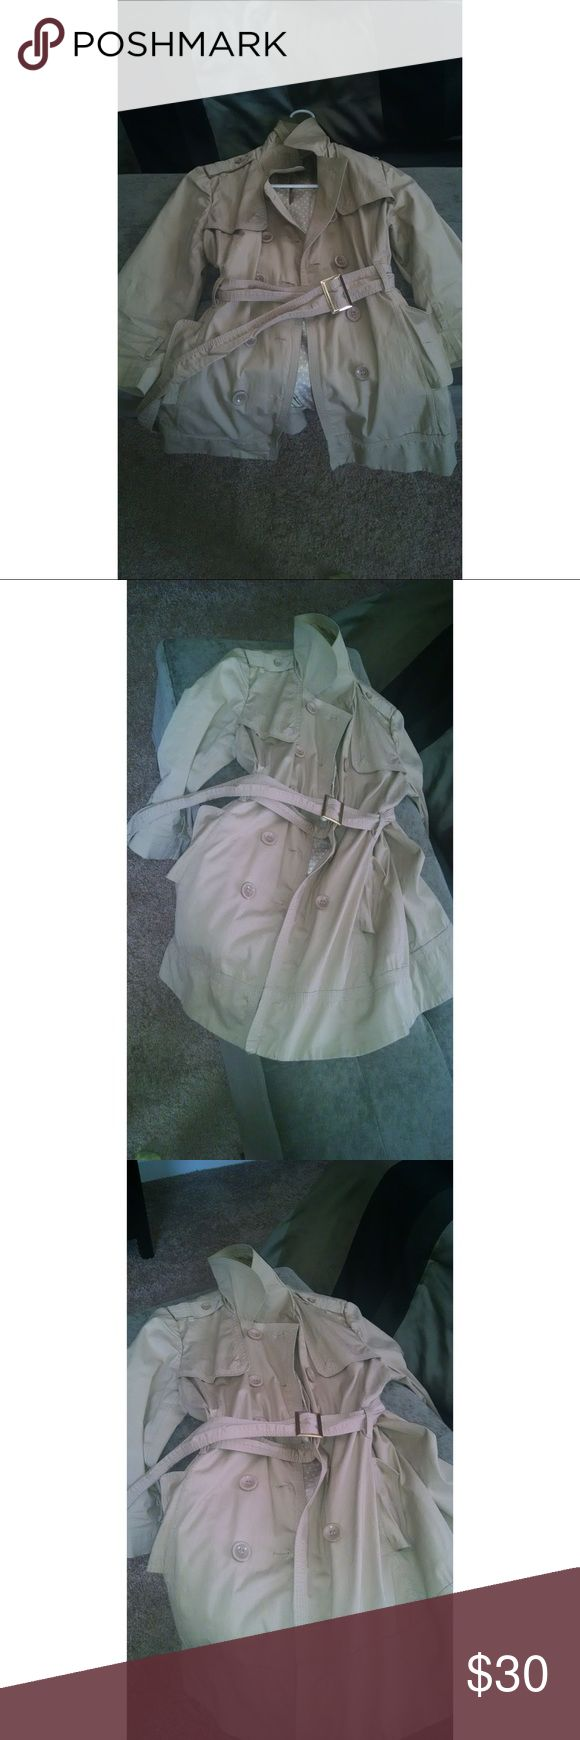 Forever 21 Lightweight Trench Women's Forever 21 Lightweight trench coat with belt Size Medium Color Tan Forever 21 Jackets & Coats Trench Coats